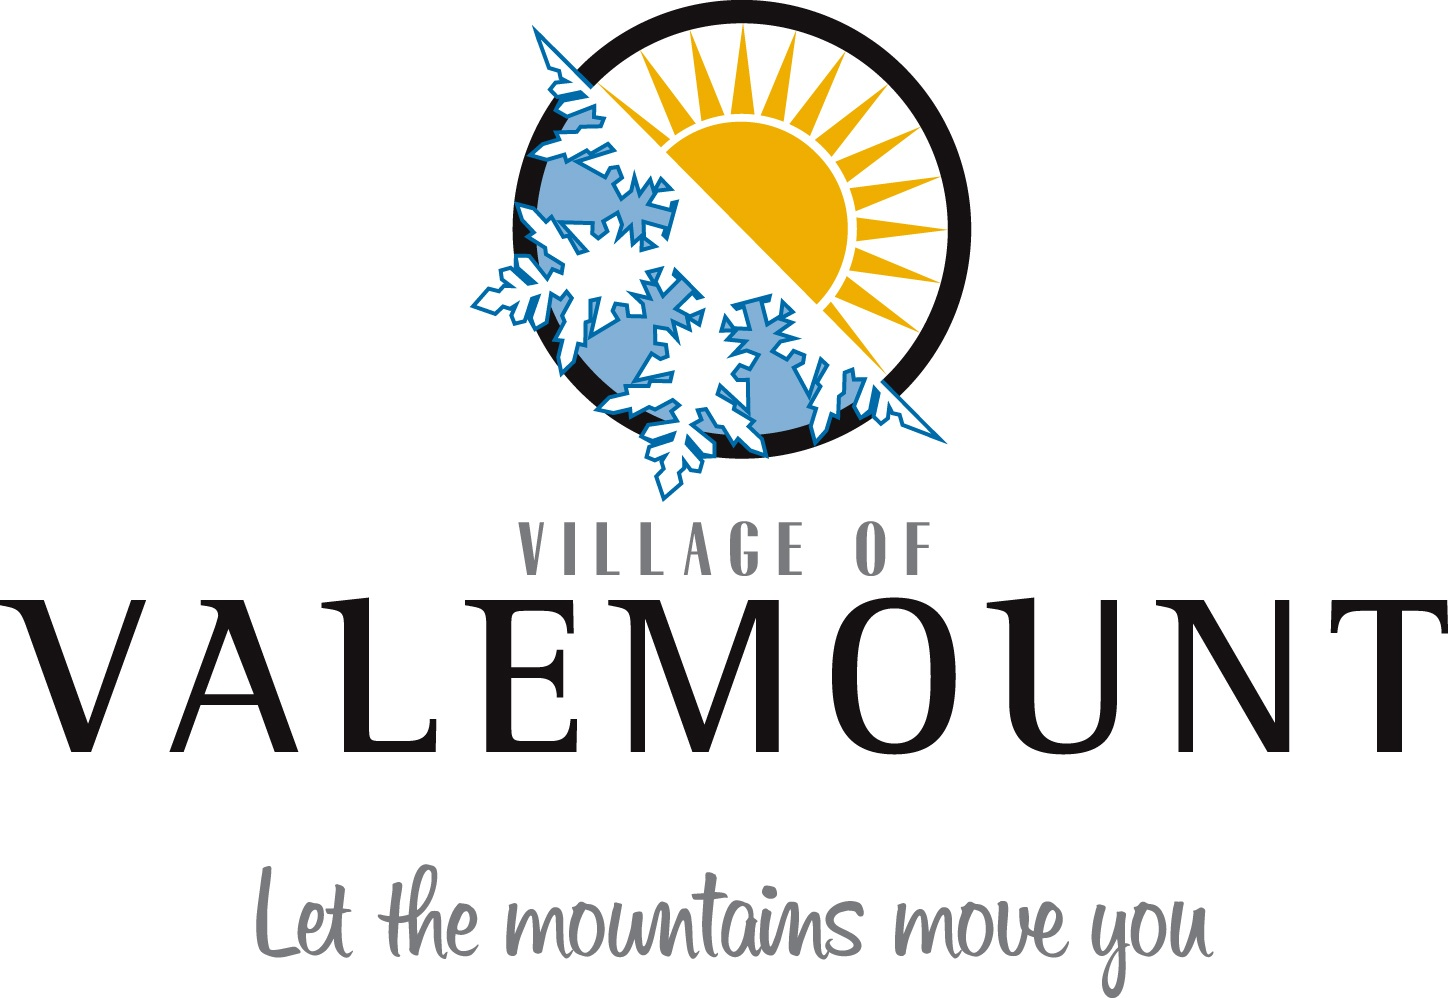 Valemount looks to join Kootenay municipal organization